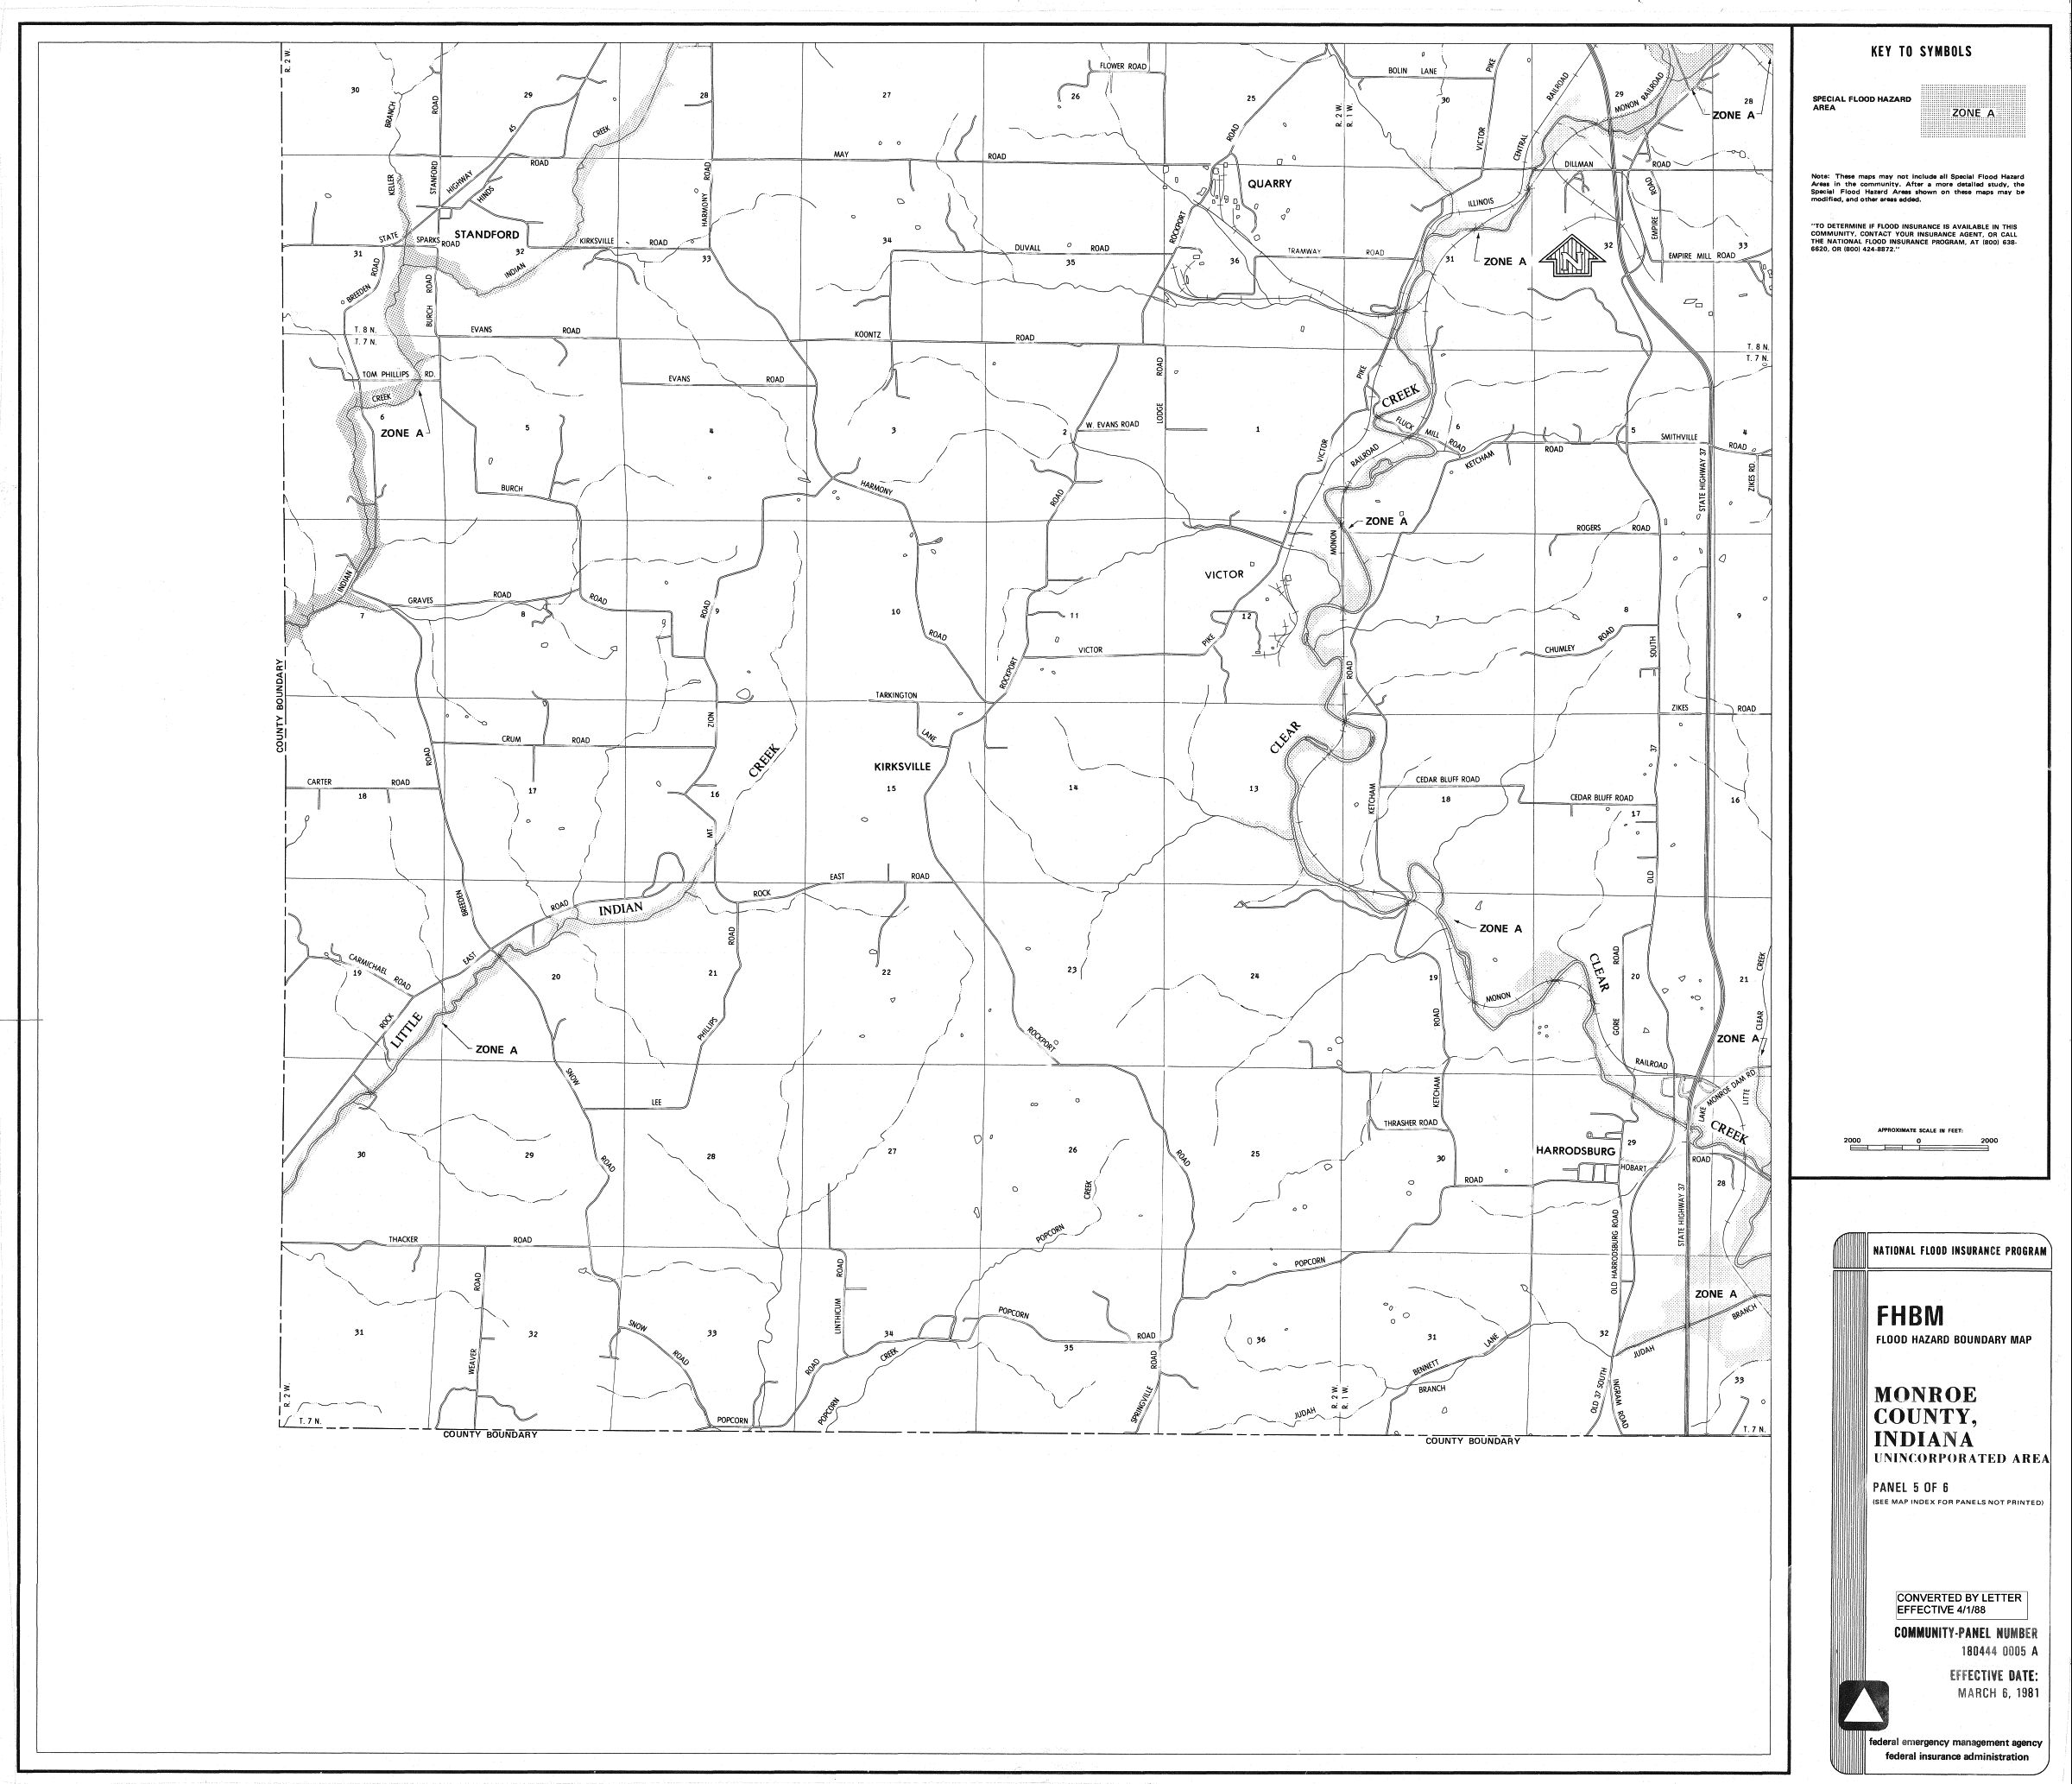 Guide Flood Maps Indiana University Libraries - Flood hazard boundary map